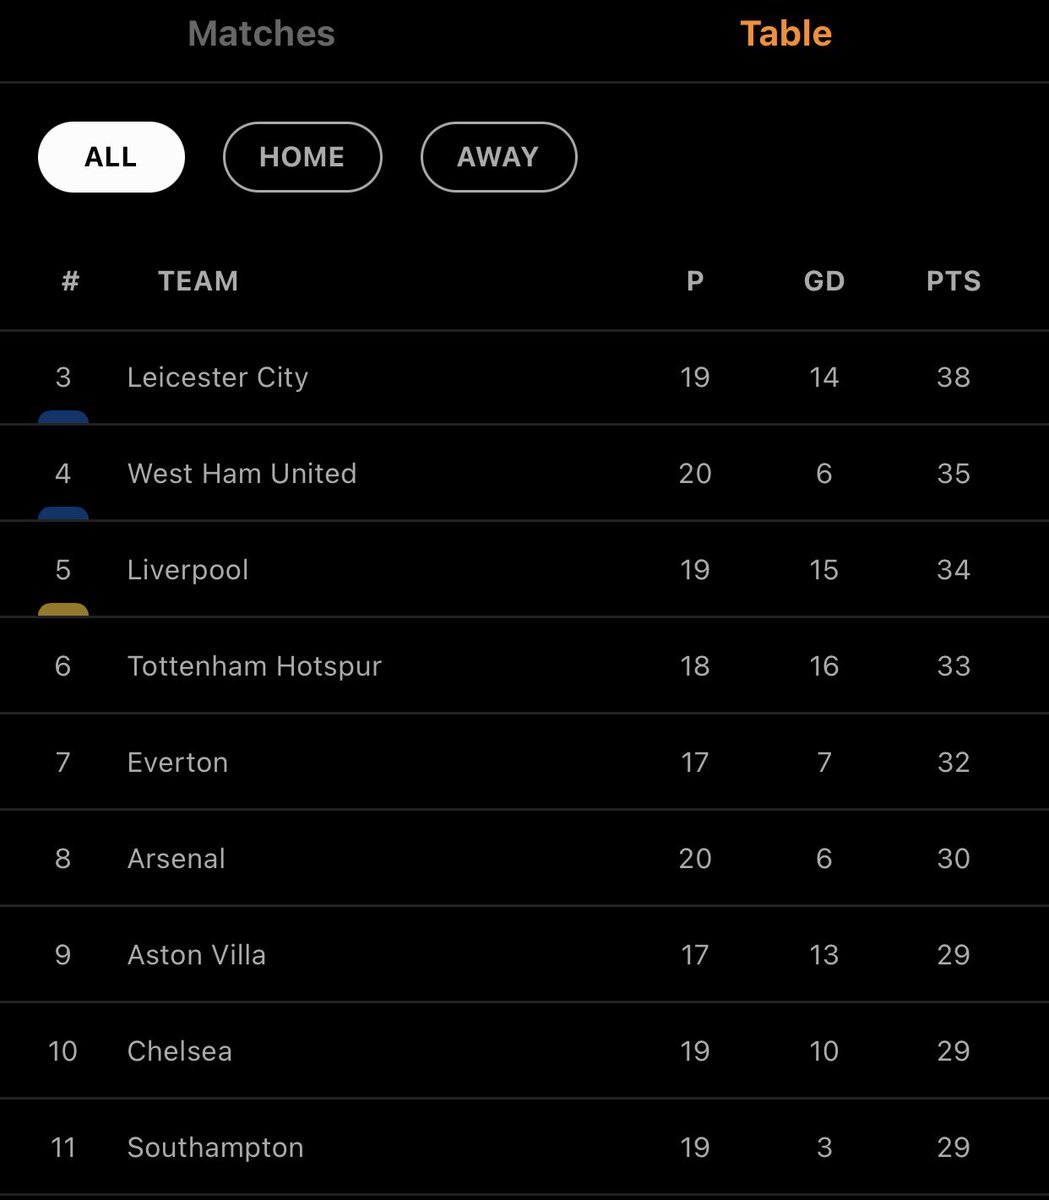 Chelsea have succeeded in allowing Arsenal to topple them on the table.  Kudos 😂😂😂😂🤣🤣🤣 #SOUARS #Chelsea